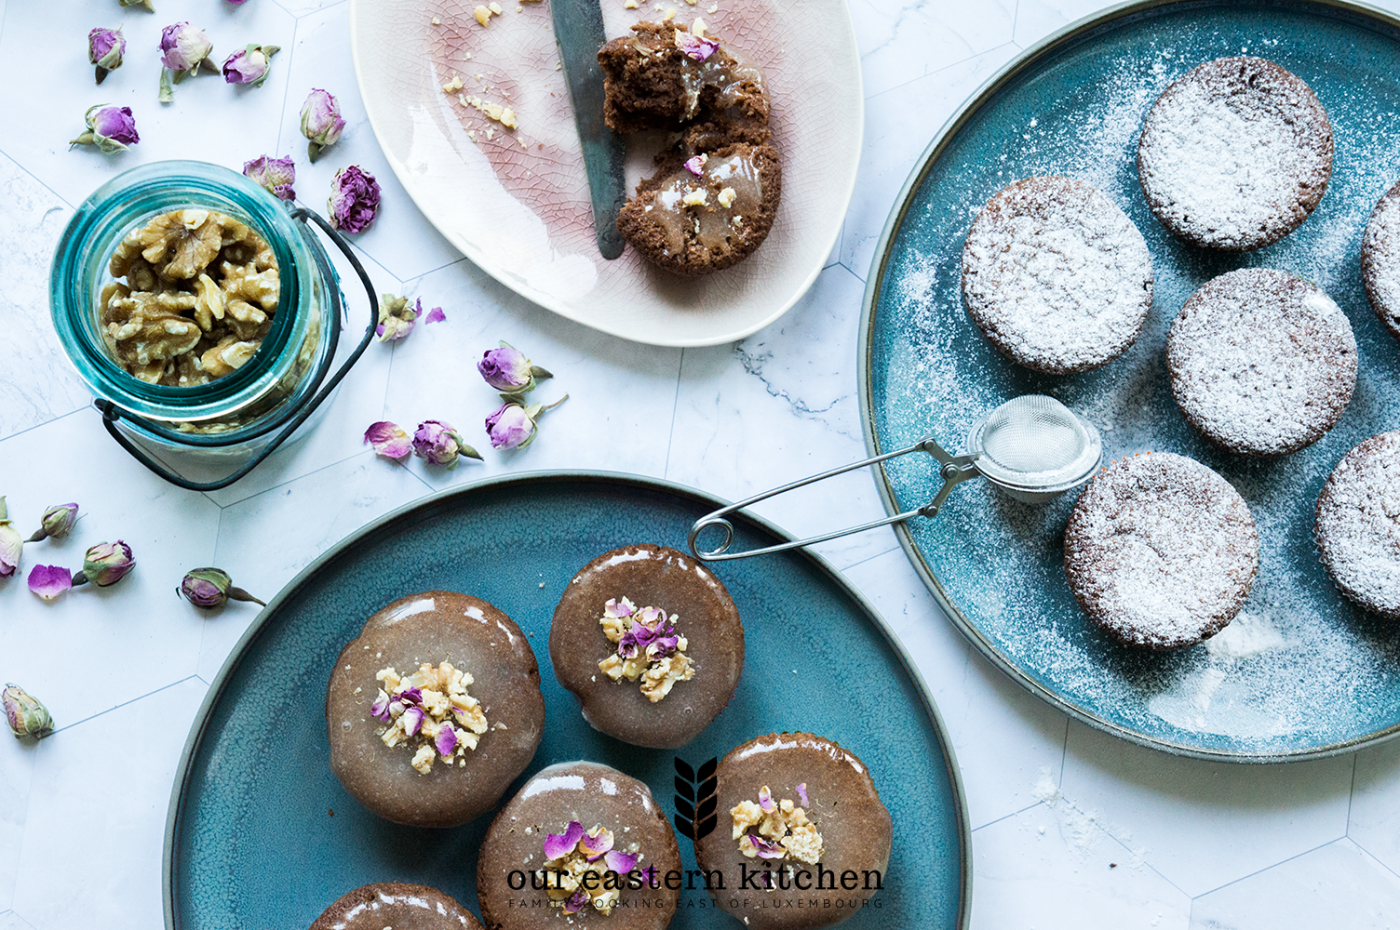 Our Eastern Kitchen - Most Delicate Chocolate Cupcakes with Lemon Glaze, Rose Petals and Walnuts - Recipe - Food Photography